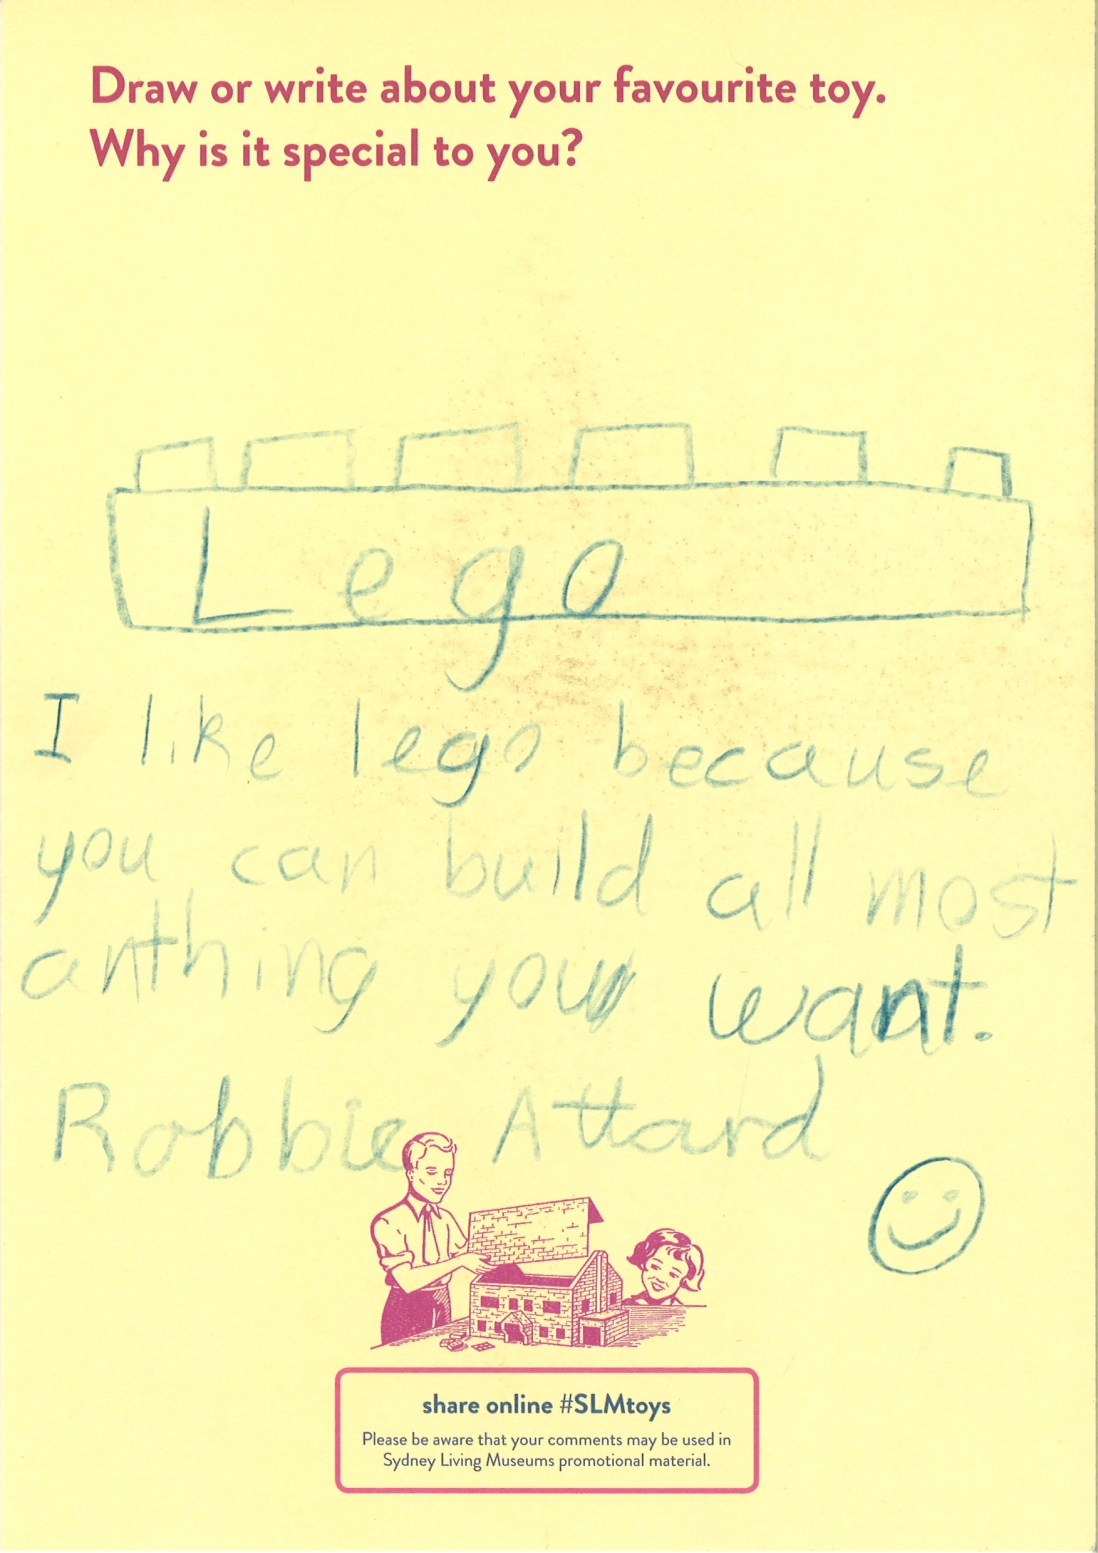 This is a drawing of a piece of Lego with a handwritten story